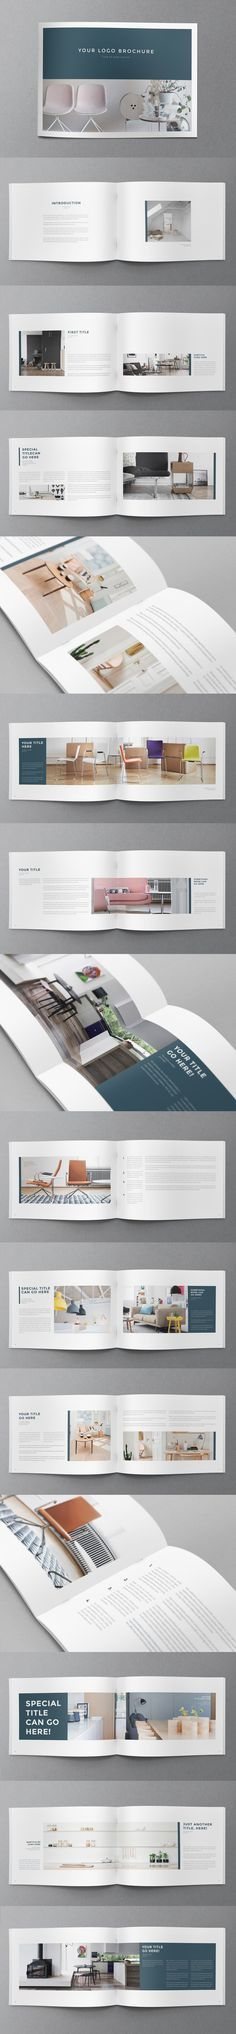 Interior Design Brochure Template | Brochures And Brochure Template